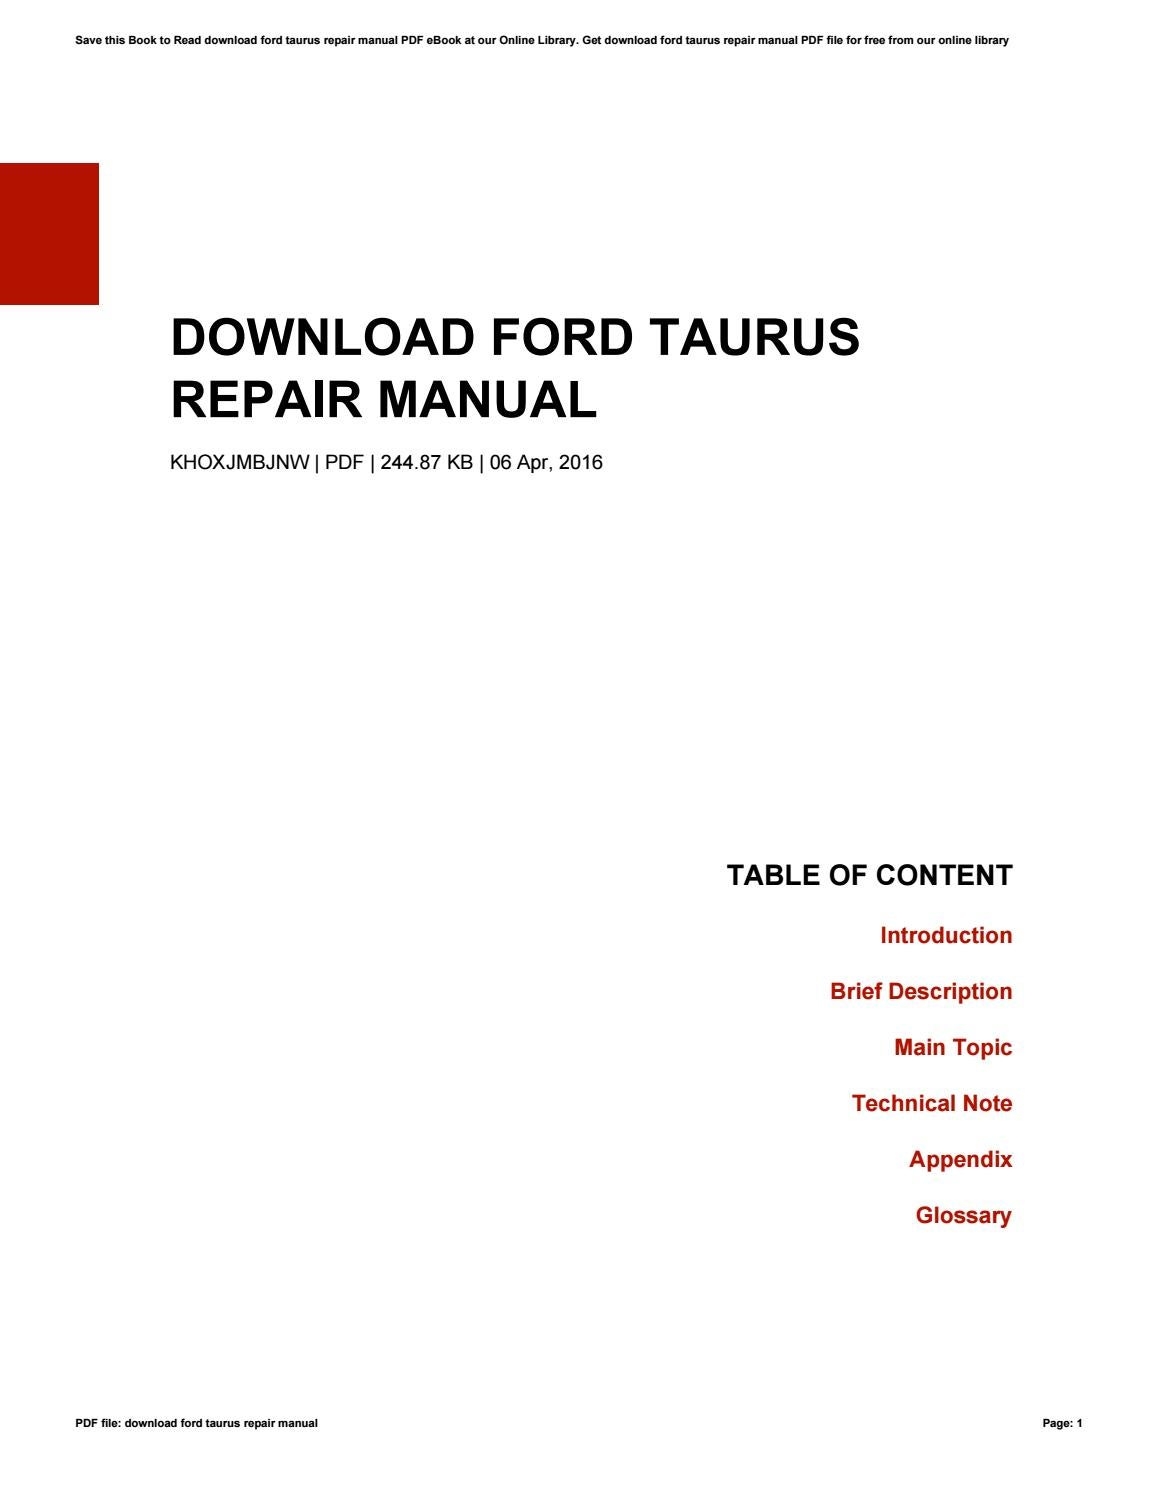 Download ford taurus repair manual by PearlineMatlock3107